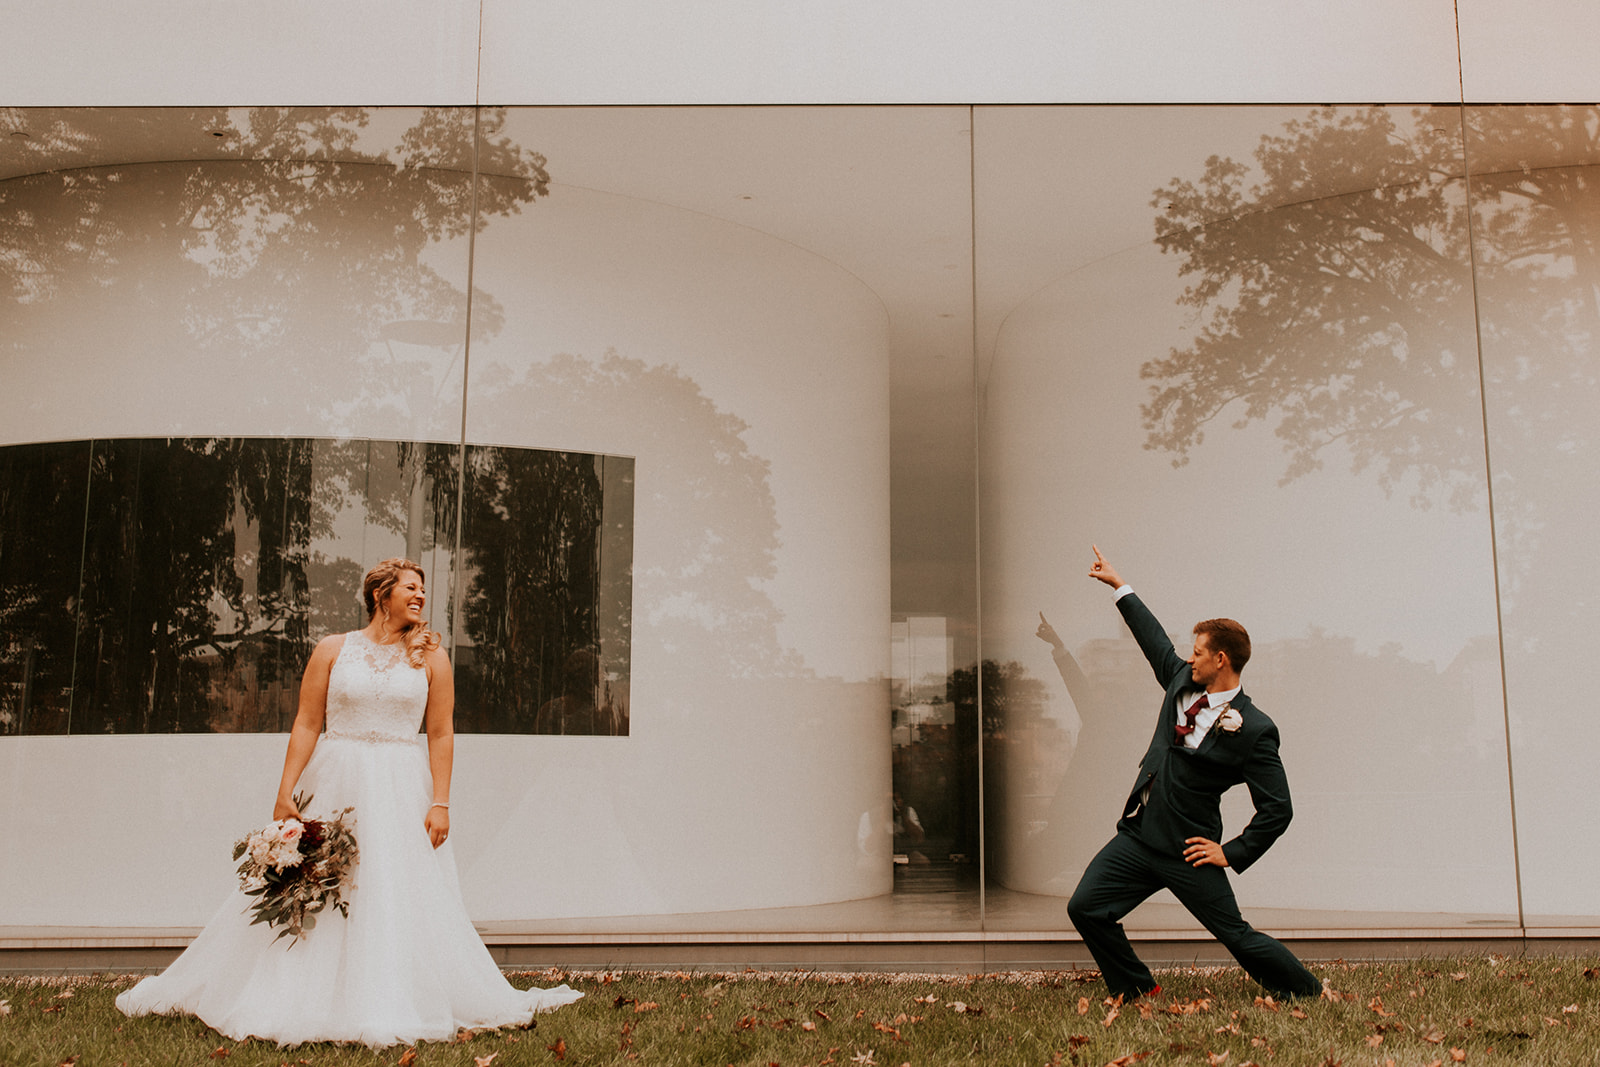 Kelsey + Andrew - Barn Venue... Check, Lush Florals... Check,Donut Wall... Check, Killer Photography... Check